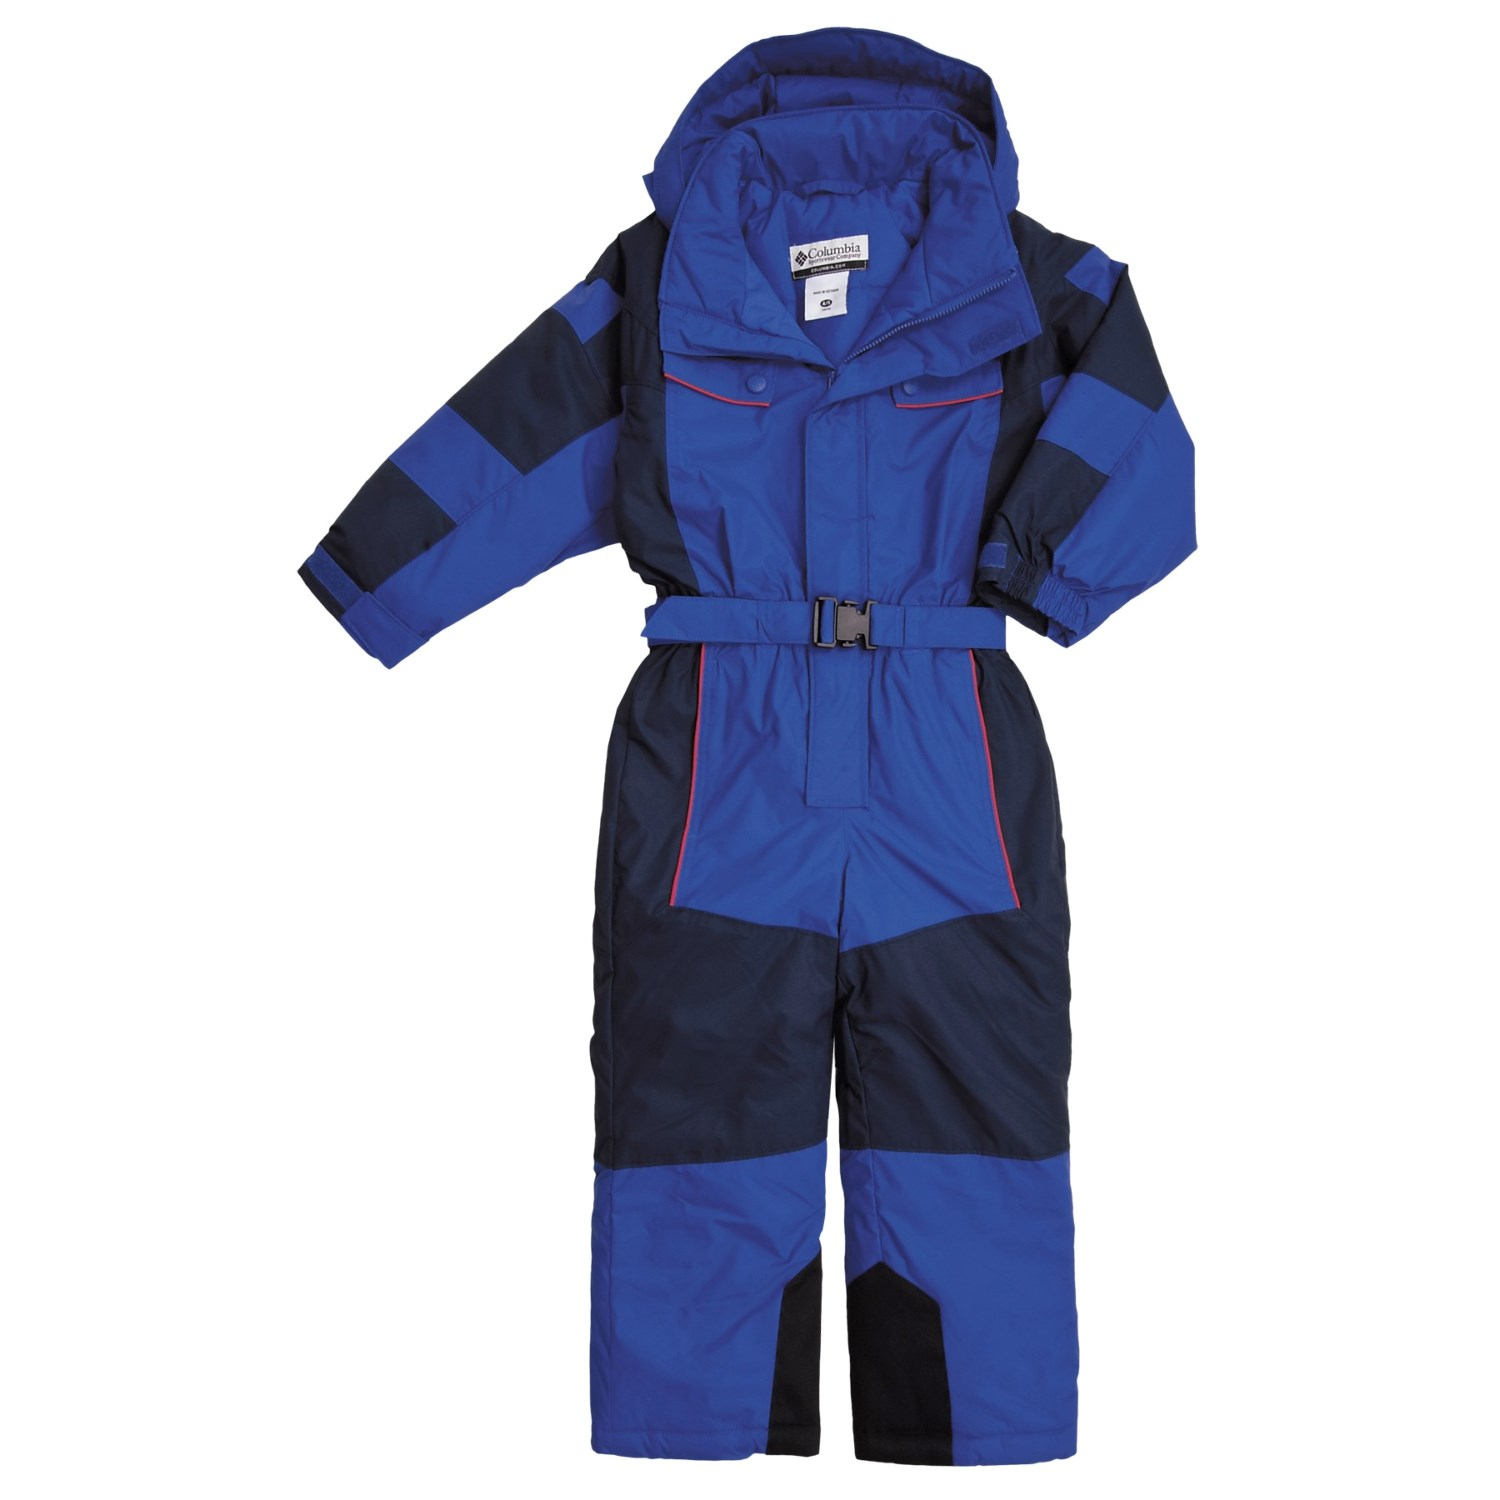 Our kids clothing range includes everything your children will need to hit the slopes, from ski jackets, snow bibs and little snow boots to keep their feet warm. Get toddlers ready for their first skiing trip with our kids snowsuits.